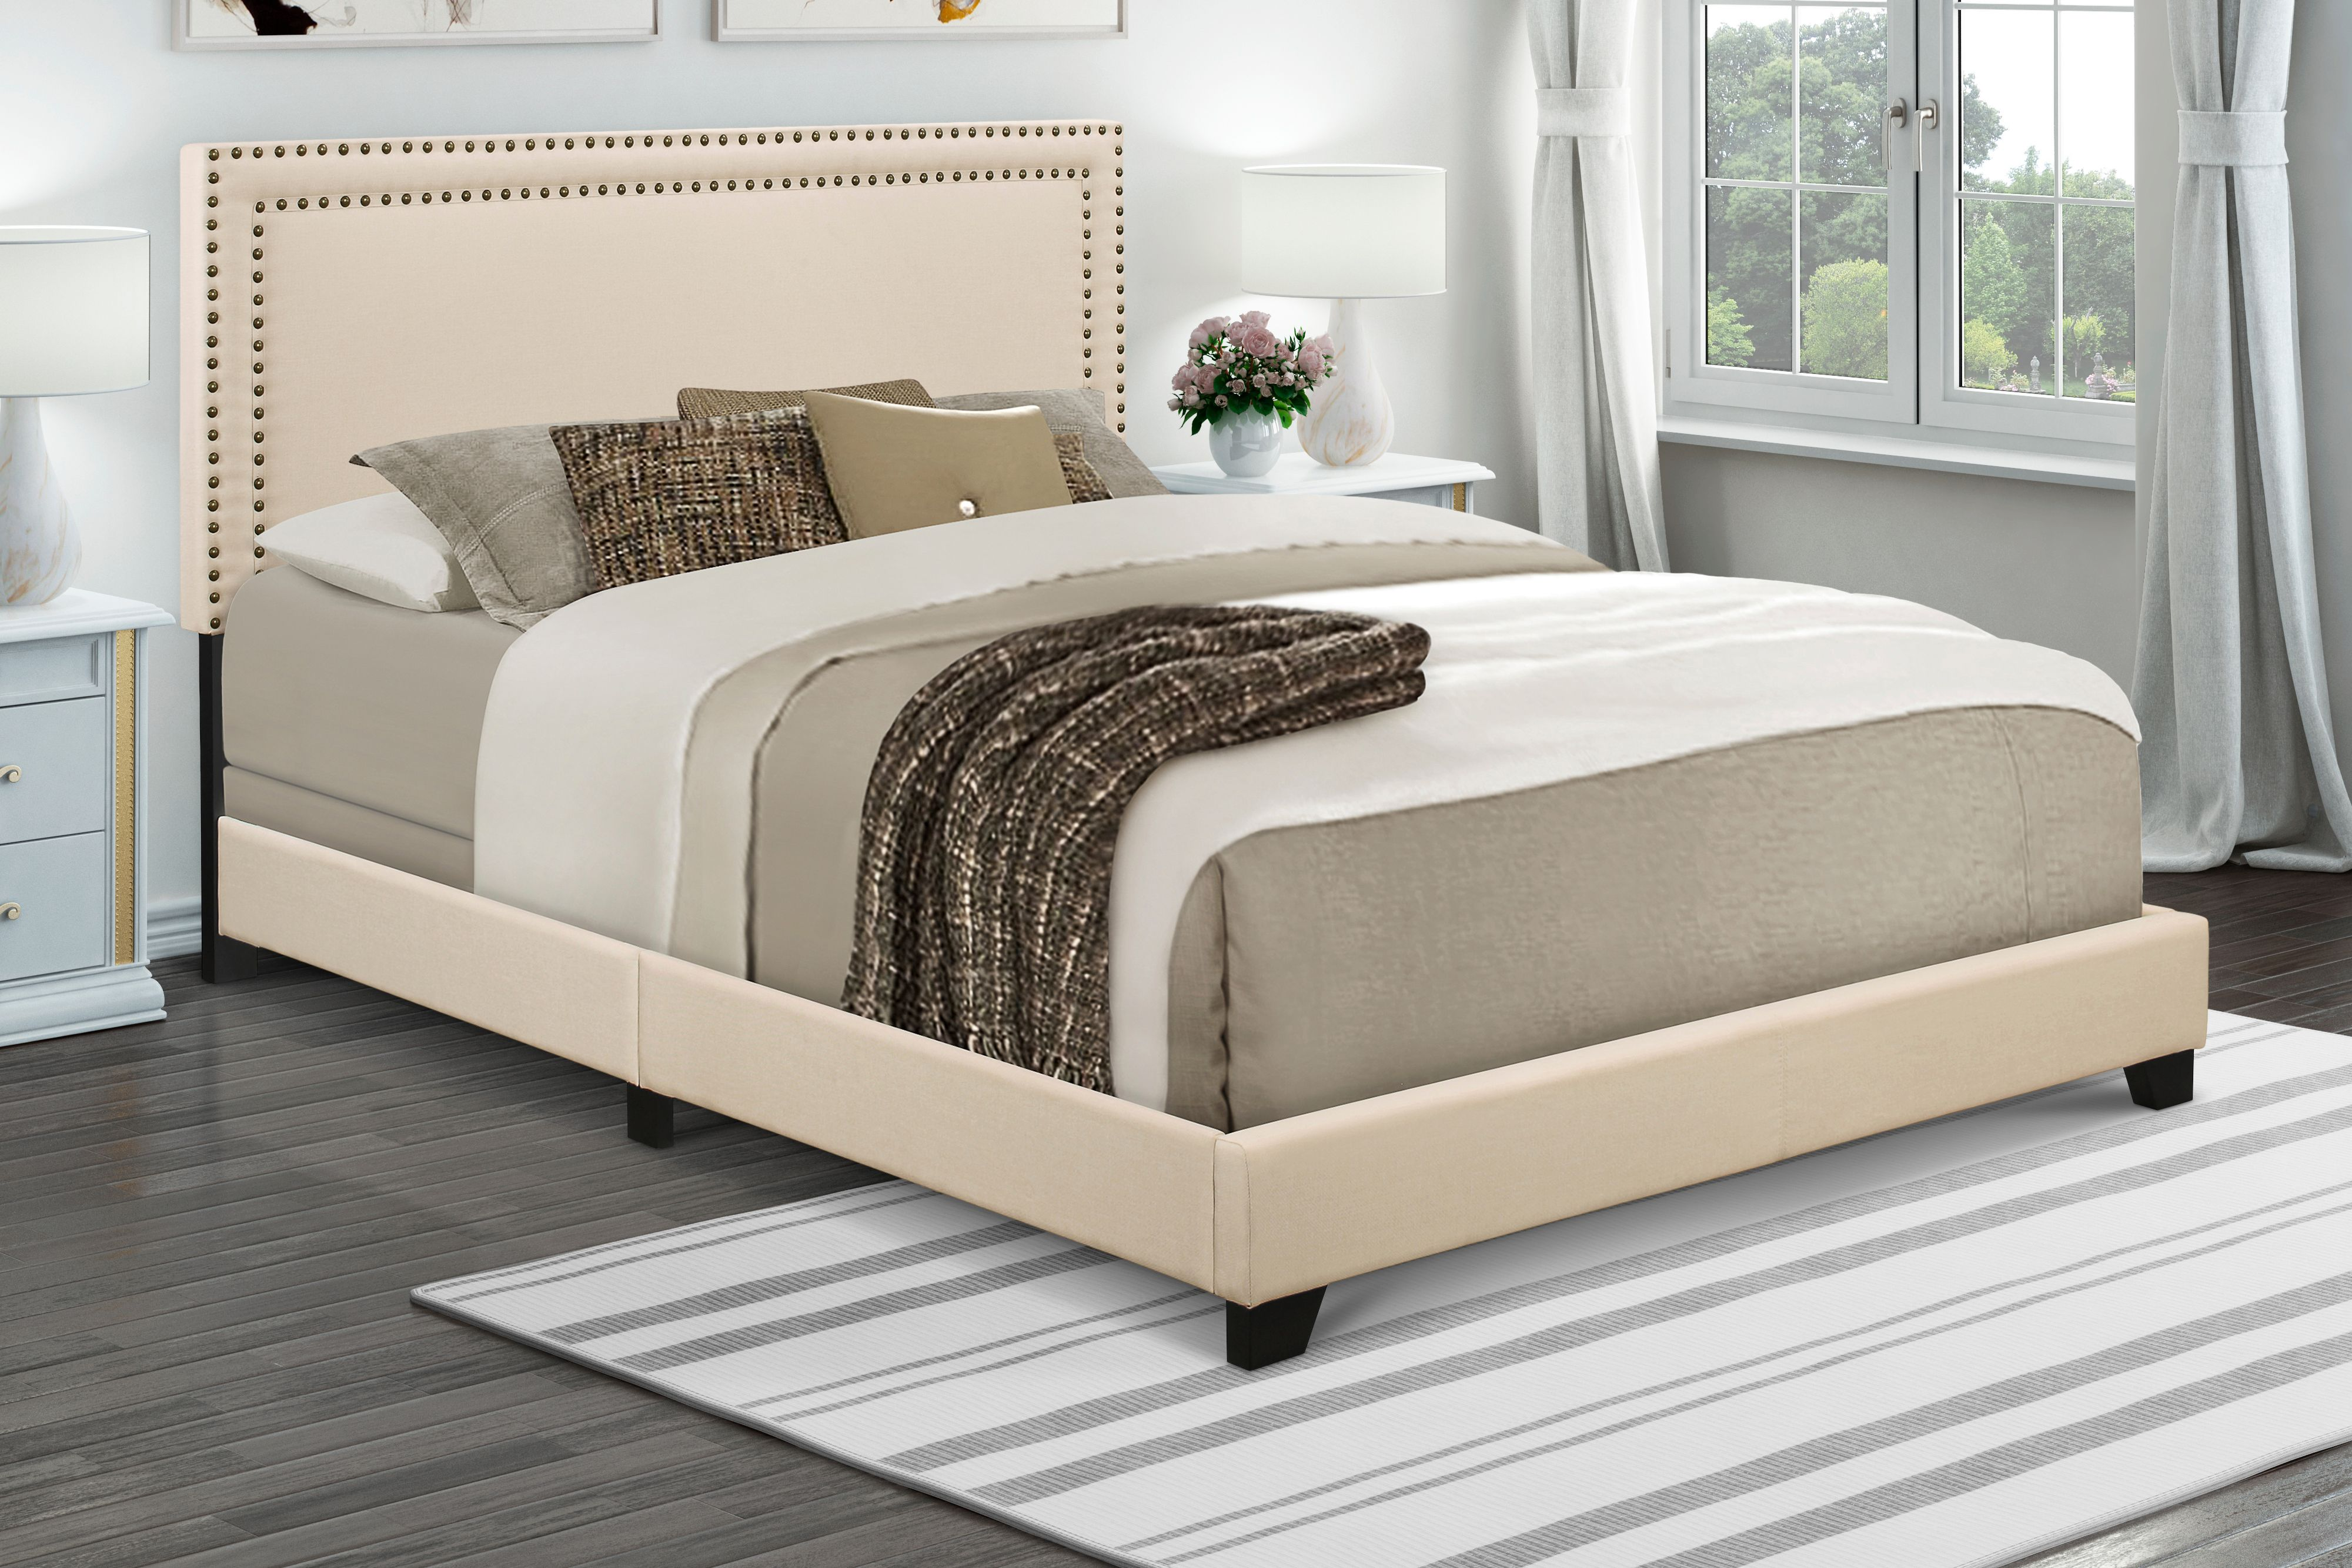 Home Meridian Cream Upholstered Queen Bed with Nail Head Trim by Home Meridian International Inc